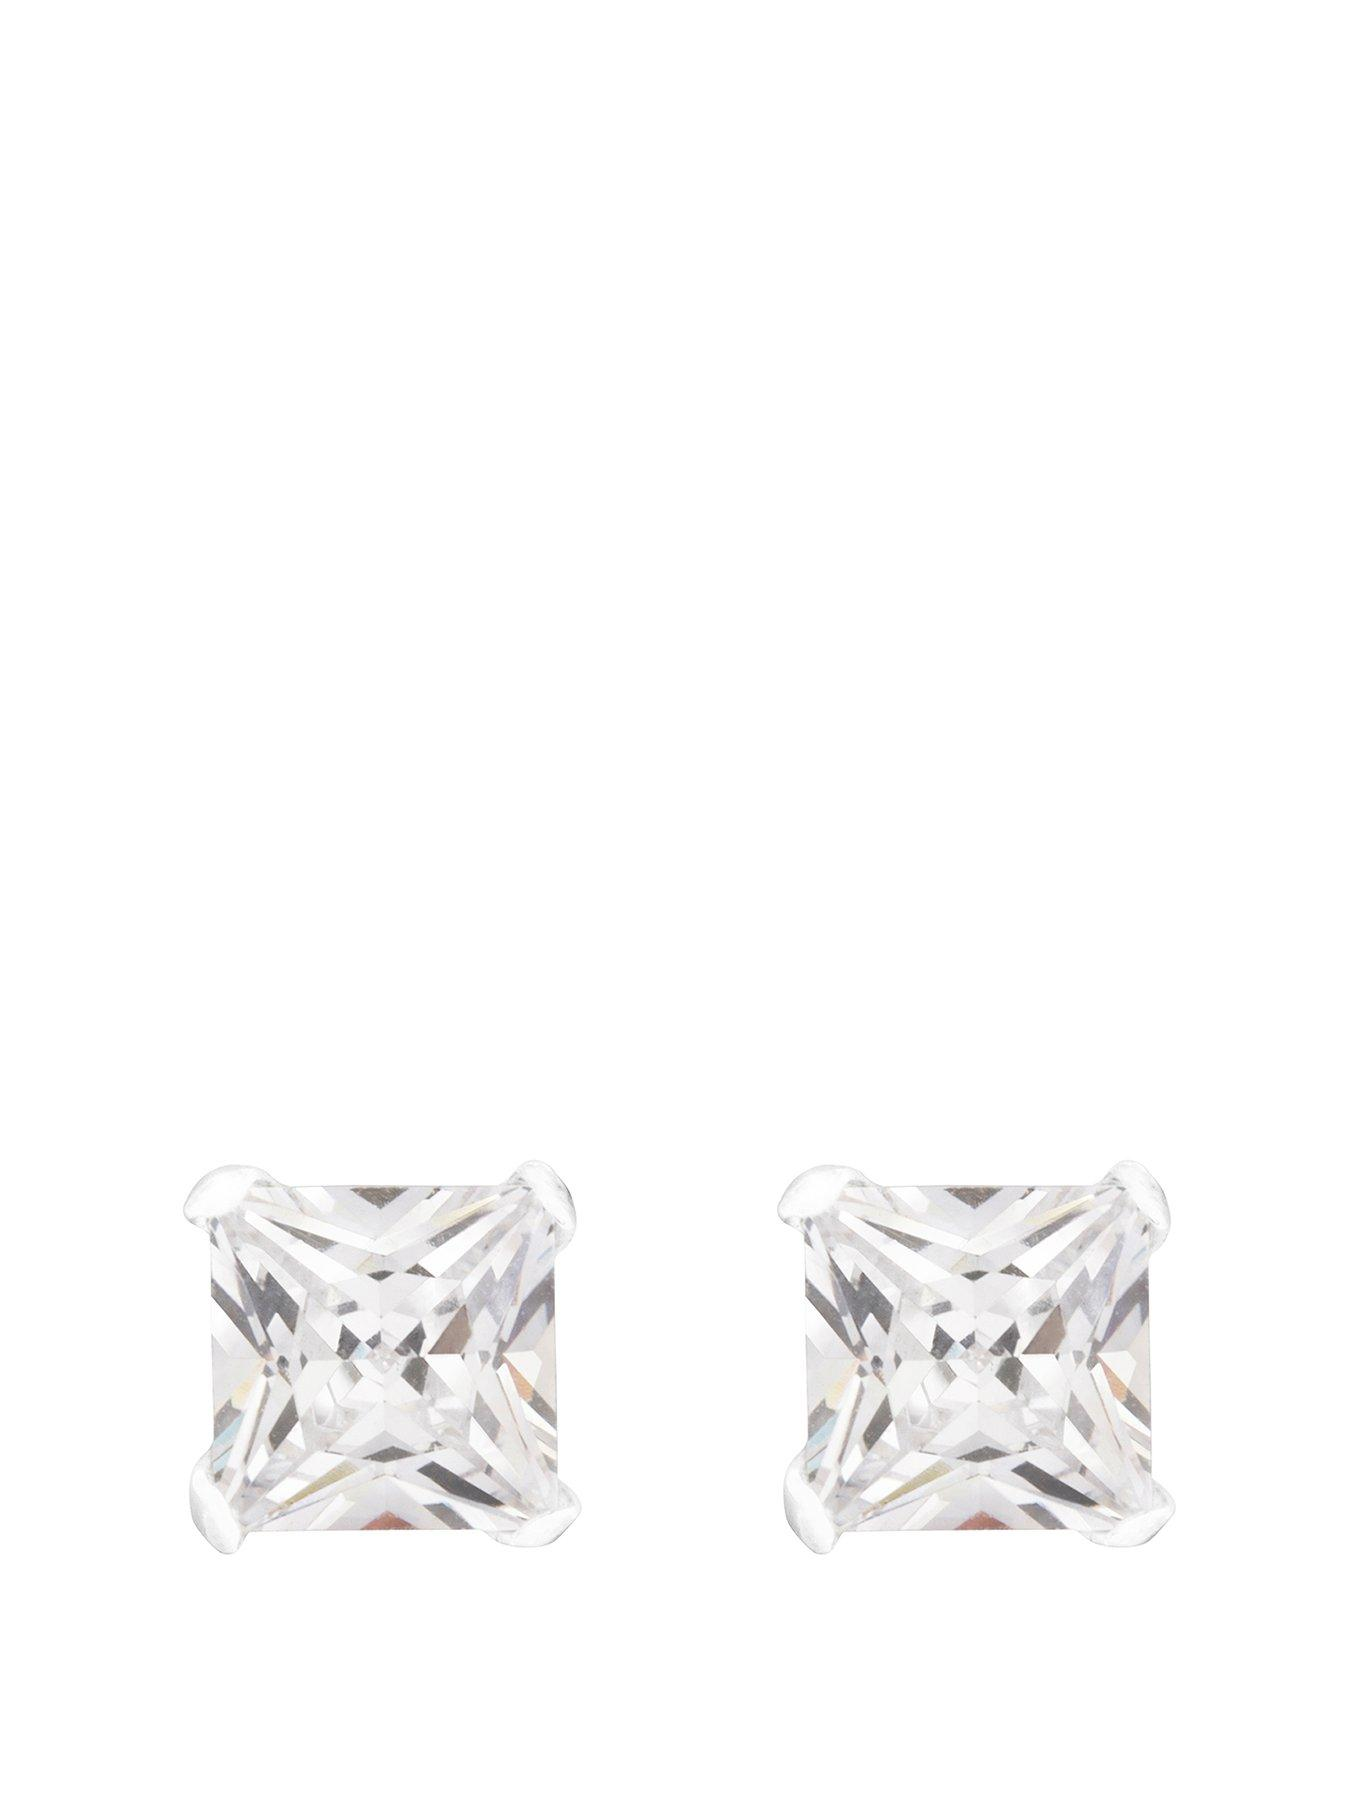 'GUESS' 3 Crystal Studs Pierced New Old Stock Earring By